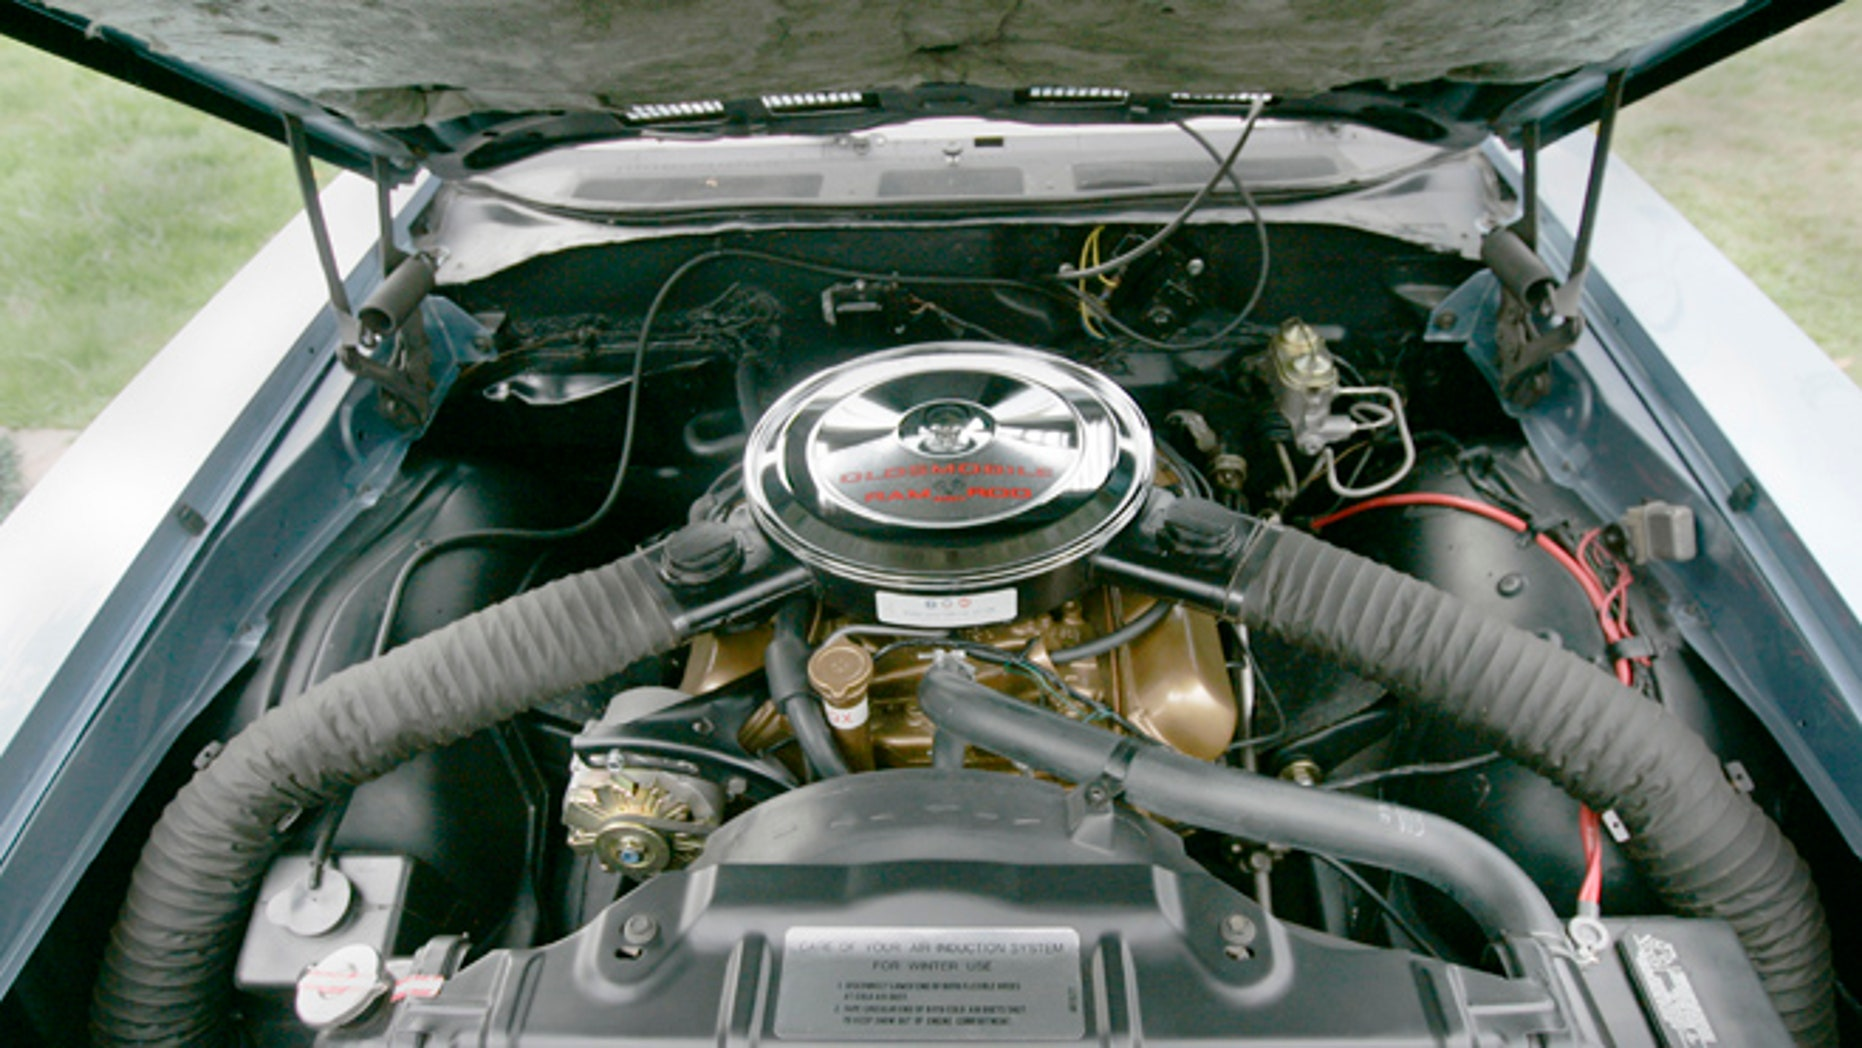 FILE- This Sept. 16, 2008 file photo shows the engine compartment of Scott Pierce's 1969 Oldsmobile F-85 with the W-31 engine performance package, in MEriden, Conn.Back when gas was cheap, Americans bought cars with V-8 engines like the Big Block, Cobra Jet and Ramcharger, but now, thanks to government regulation and gas-price gyrations, the motors that move the nations cars and trucks are shrinking. (AP Photo/The Record-Journal, Johnathon Henniger)**MANDATORY CREDIT, MAGS OUT, NO SALES**